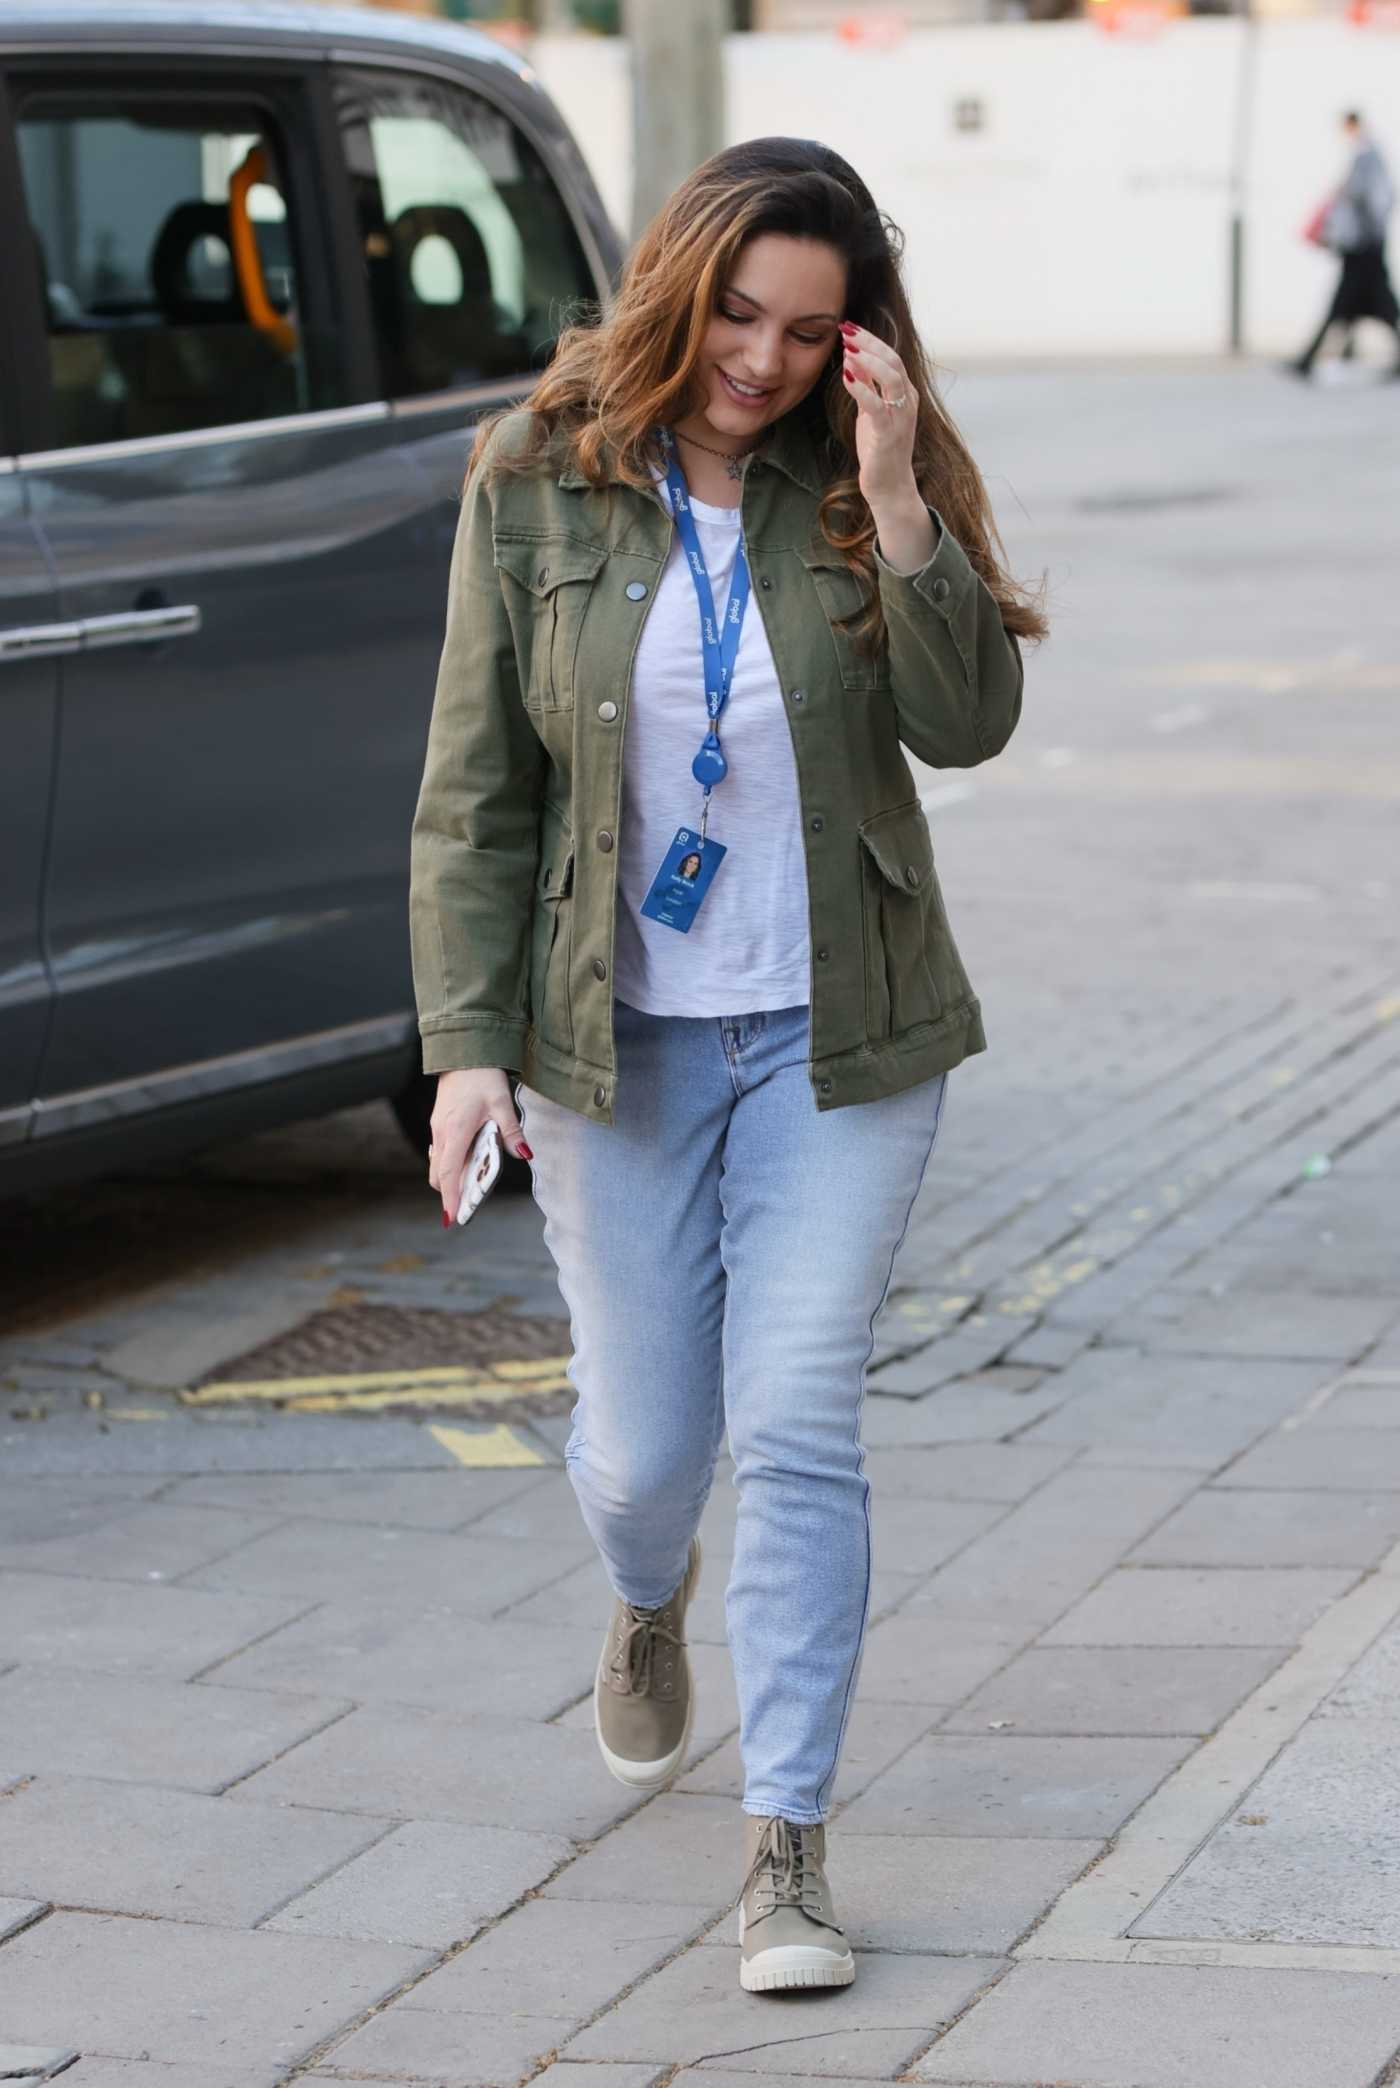 Kelly Brook in a Khaki Jacket Arrives at the Heart Radio Studios in London 02/26/2021